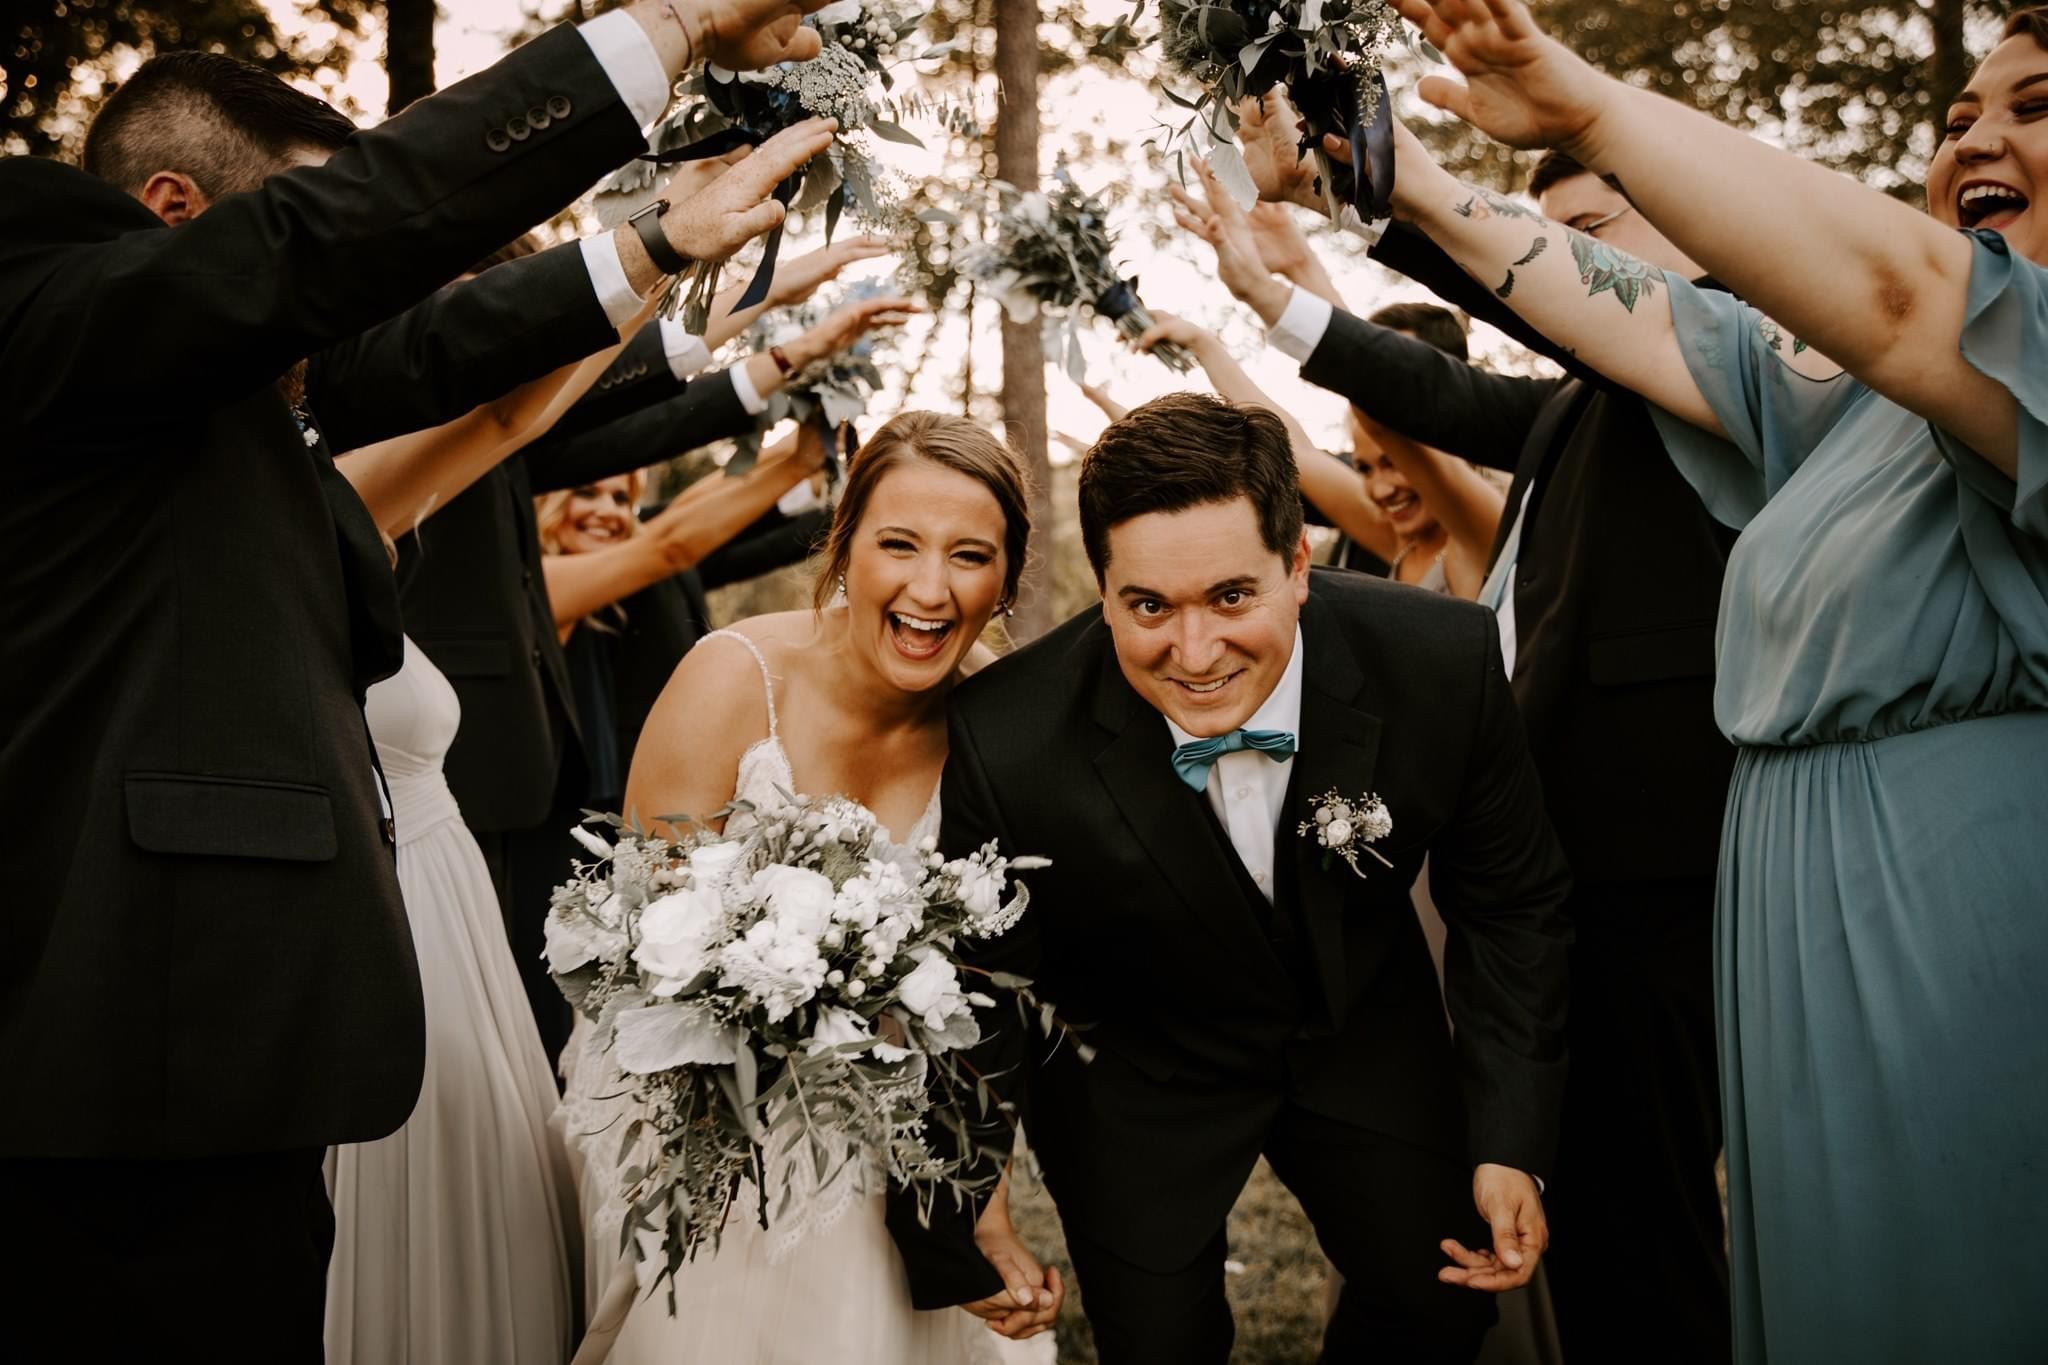 Image for post: Welcome to Molly Price Photography!